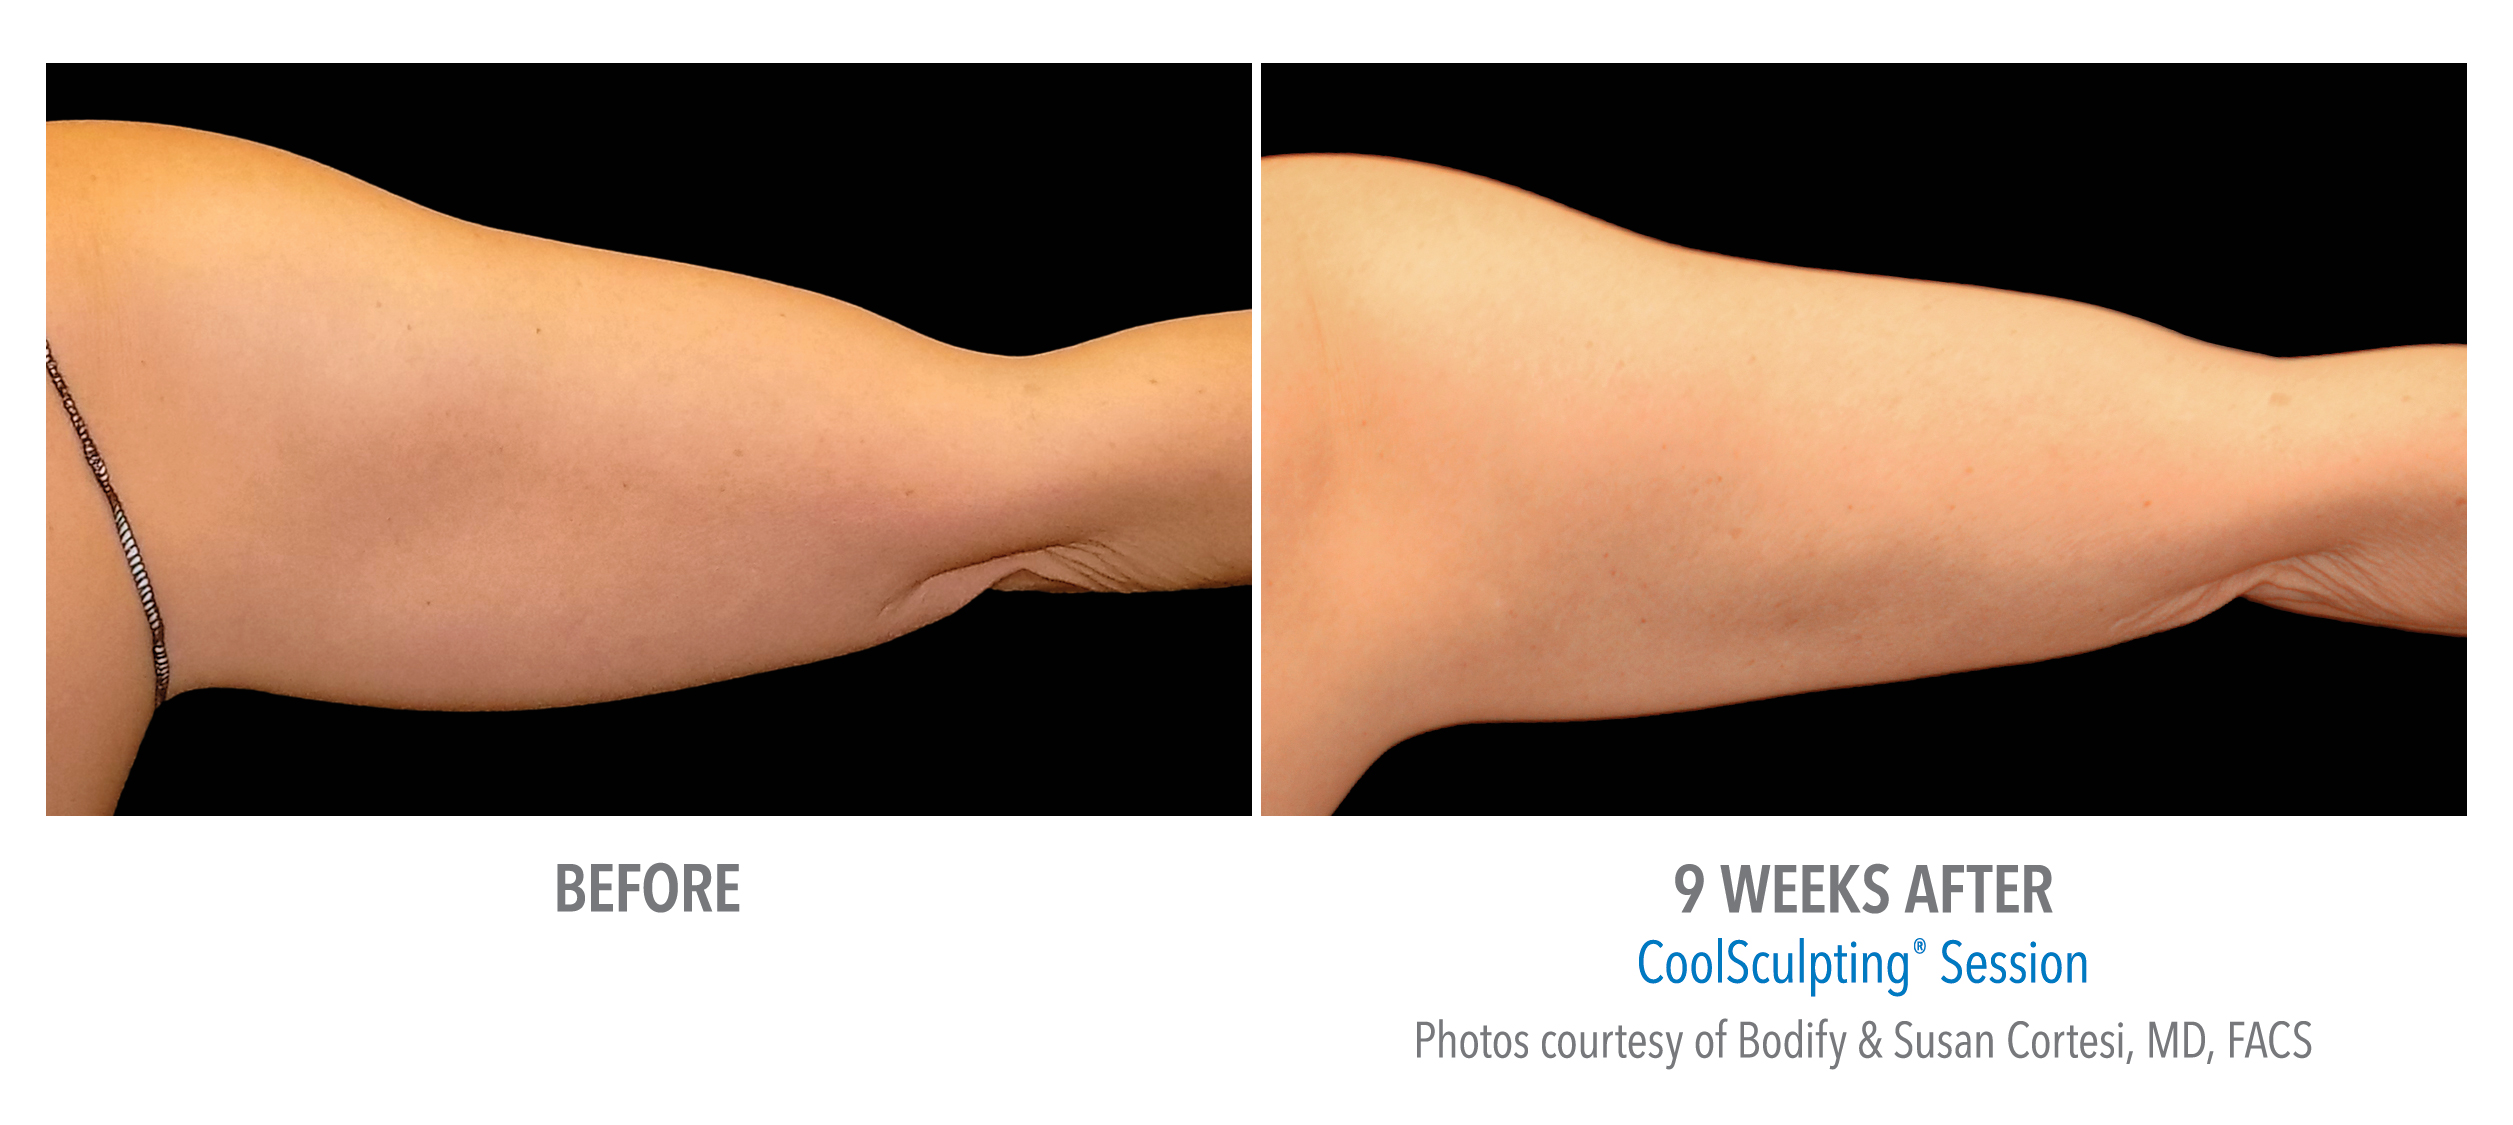 arm coolsculpting before after